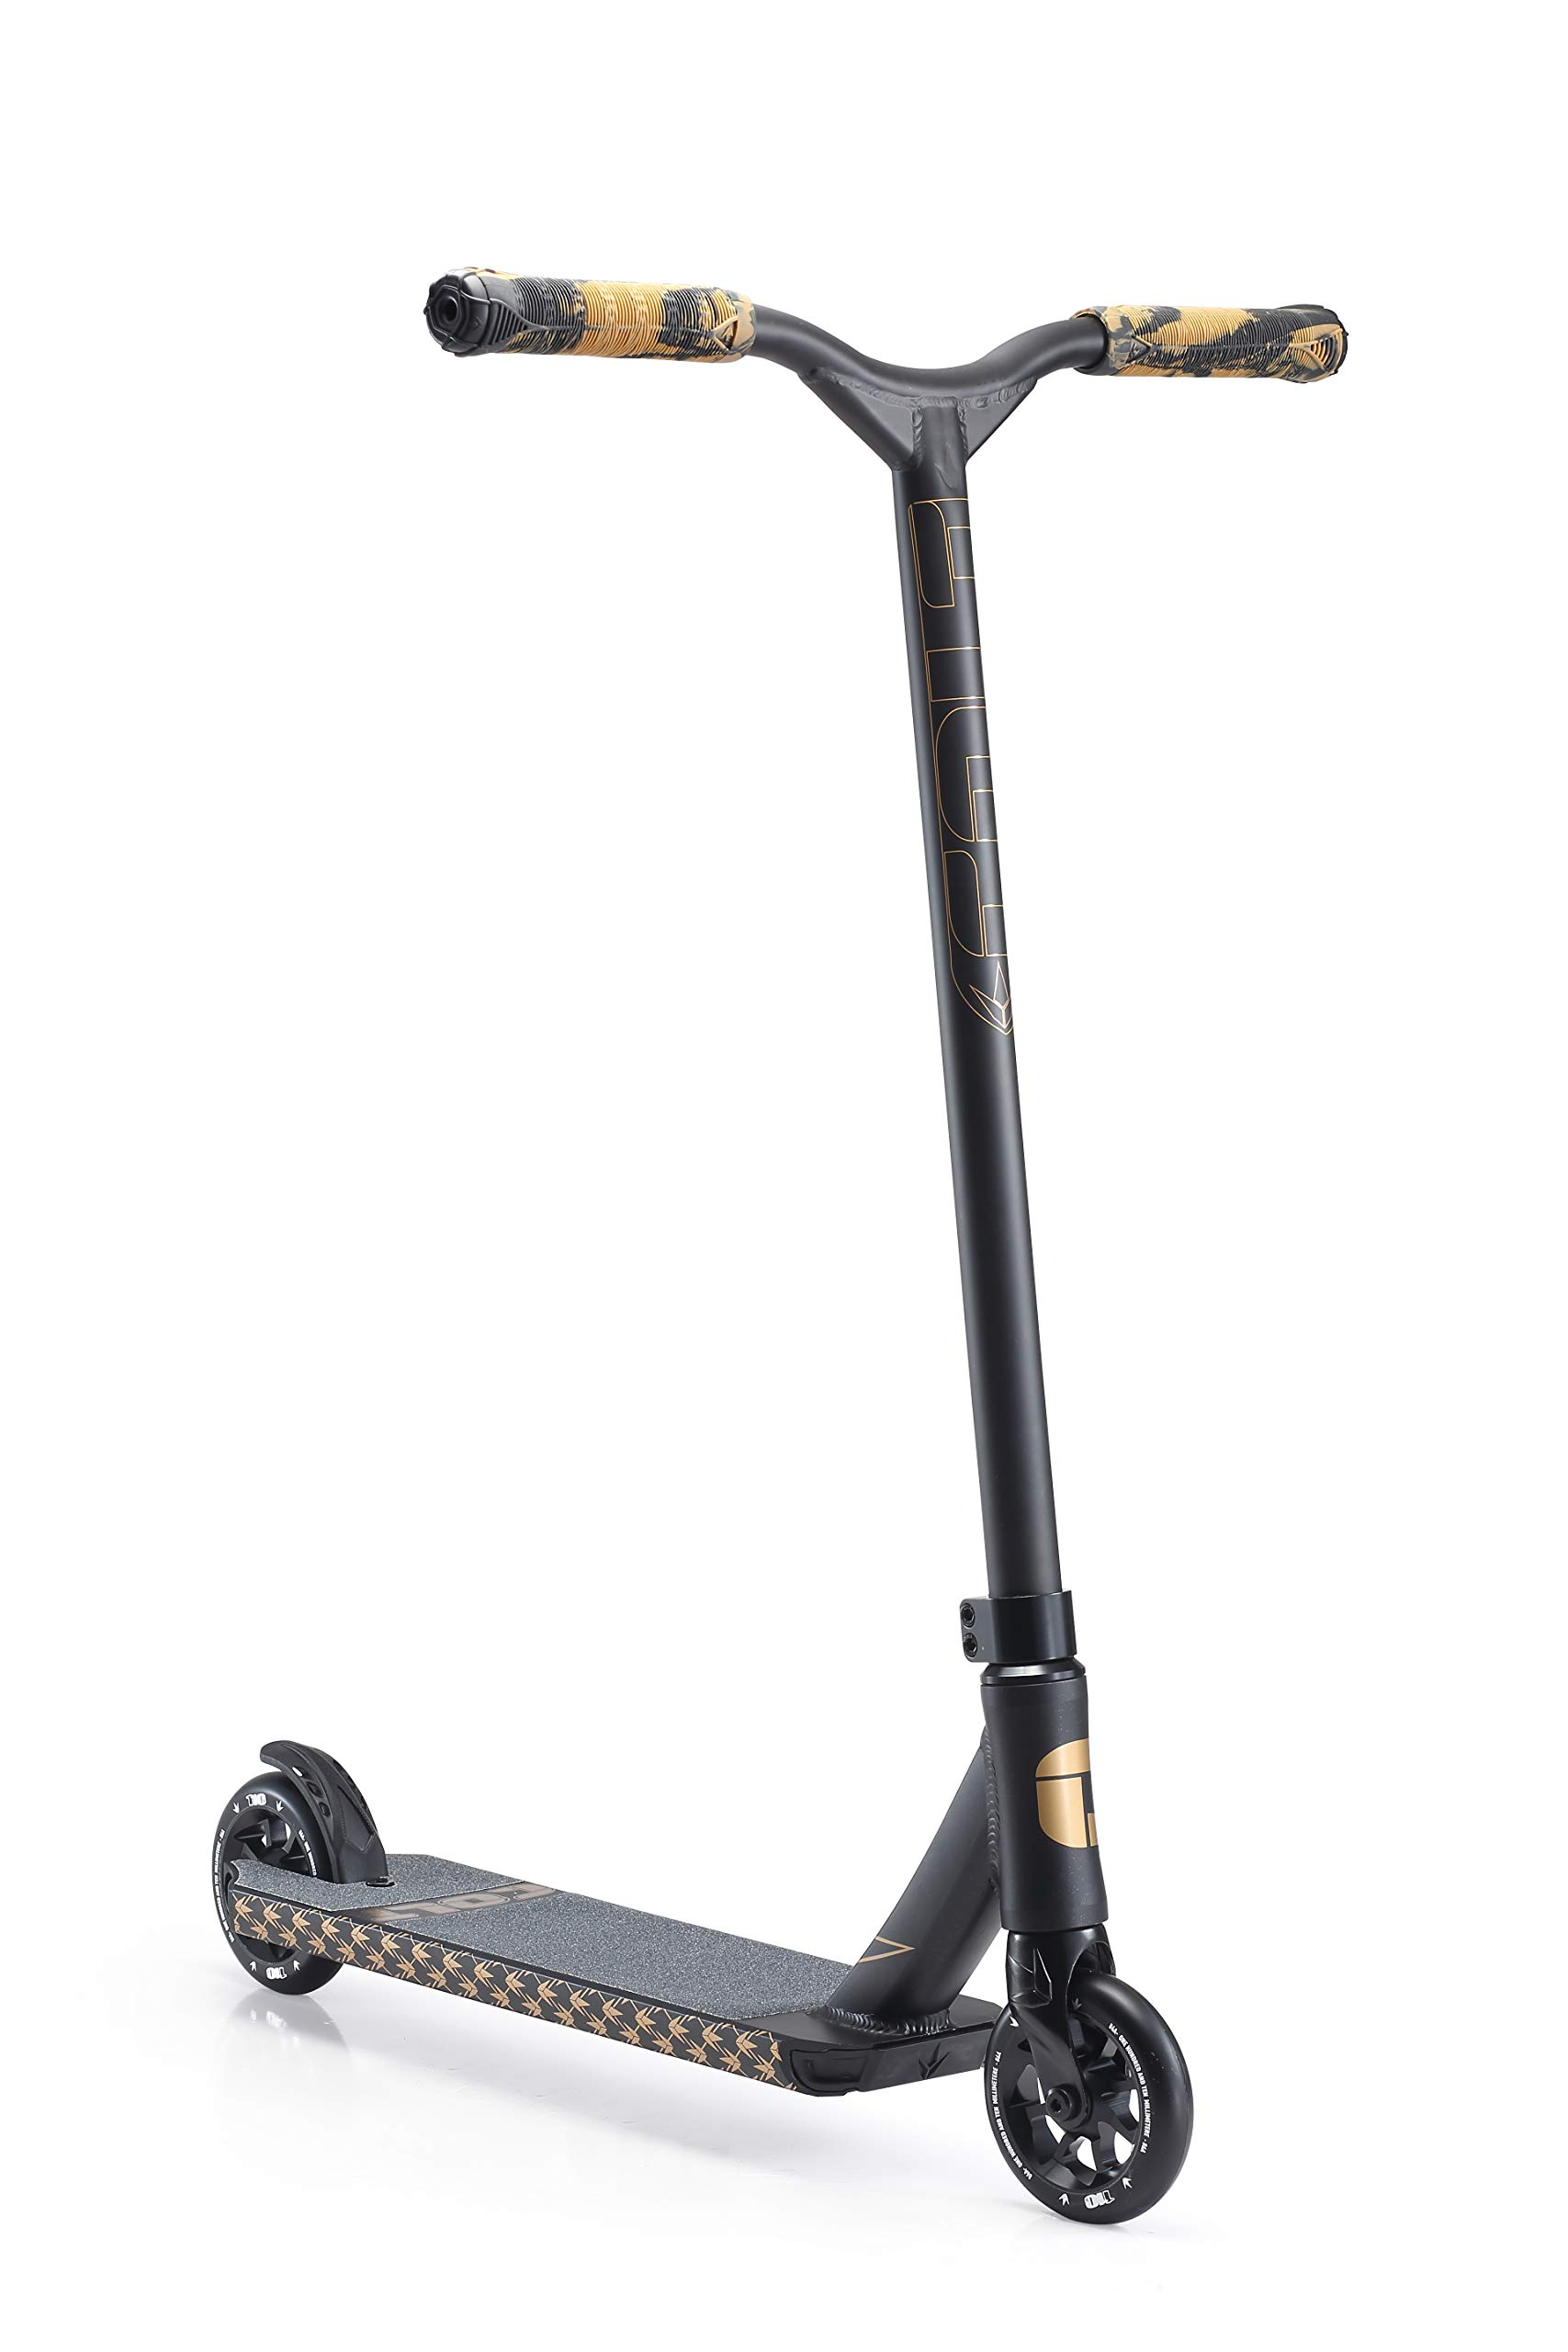 Envy Series 4 Colt Scooter (Black)